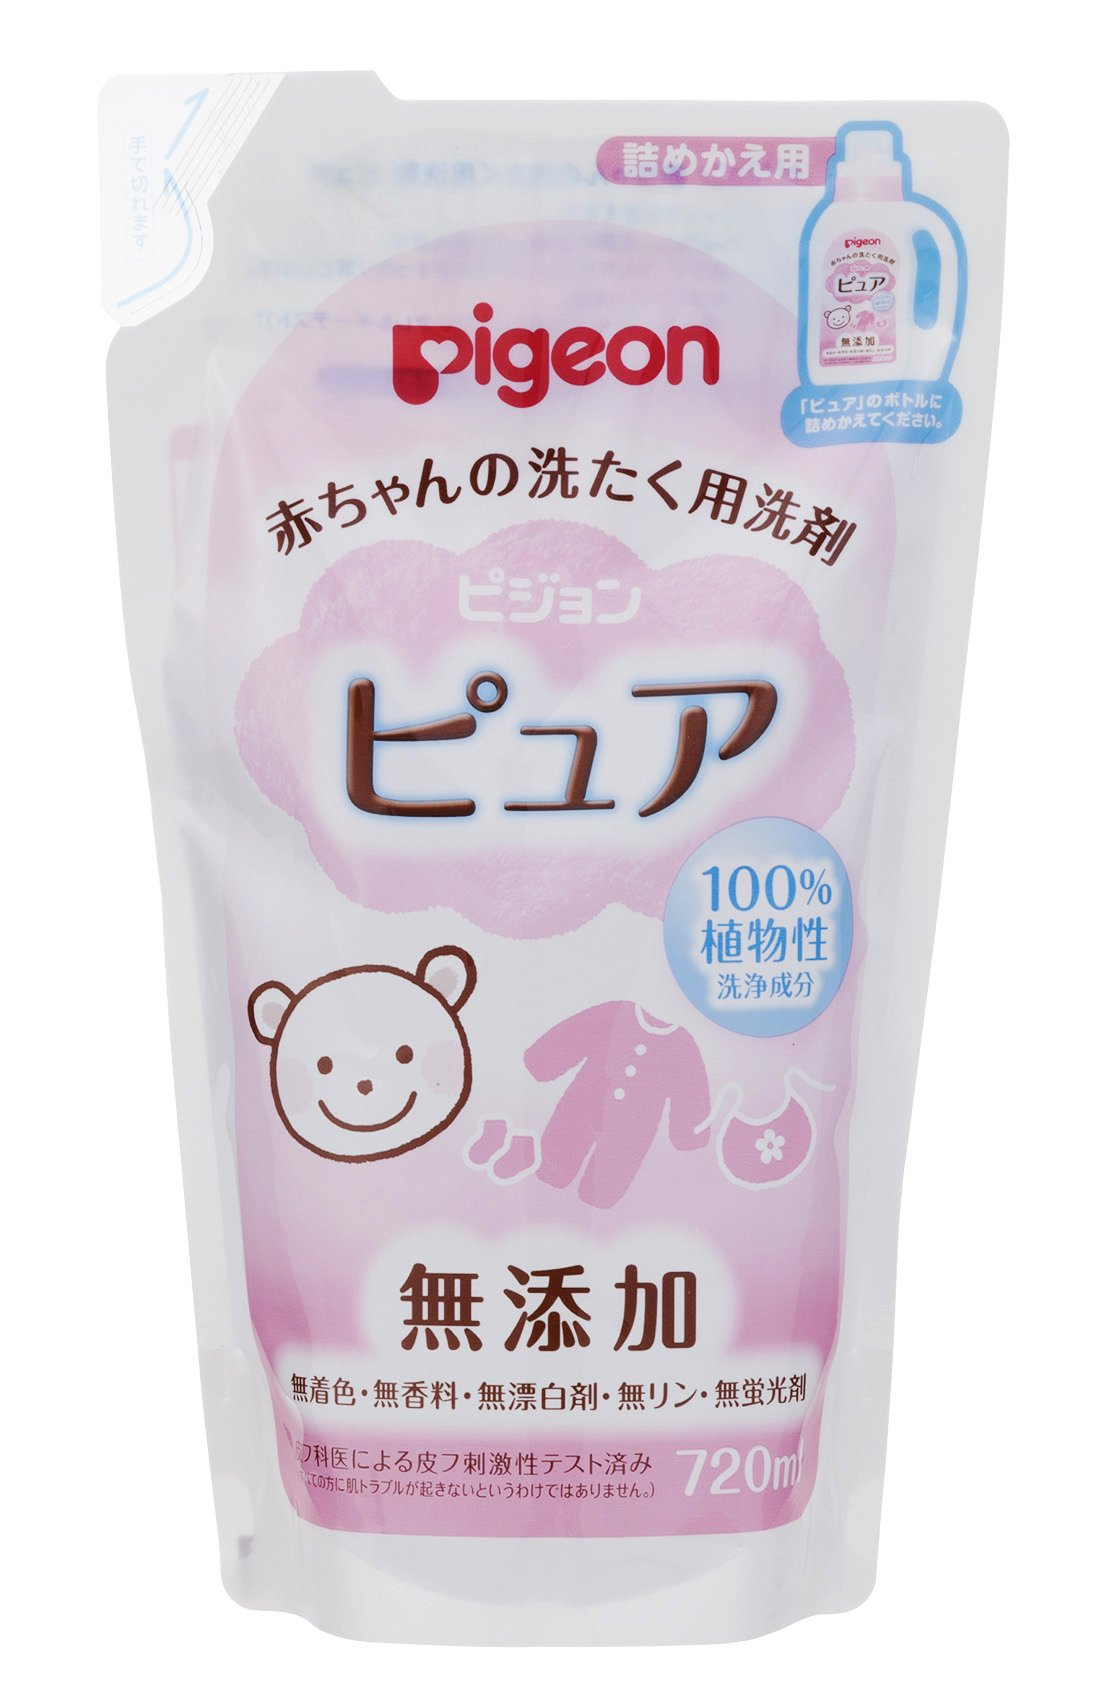 Japan Health and Personal - 720ml for changing laundry detergent Pure stuffed Pigeon baby *AF27* by Pigeon